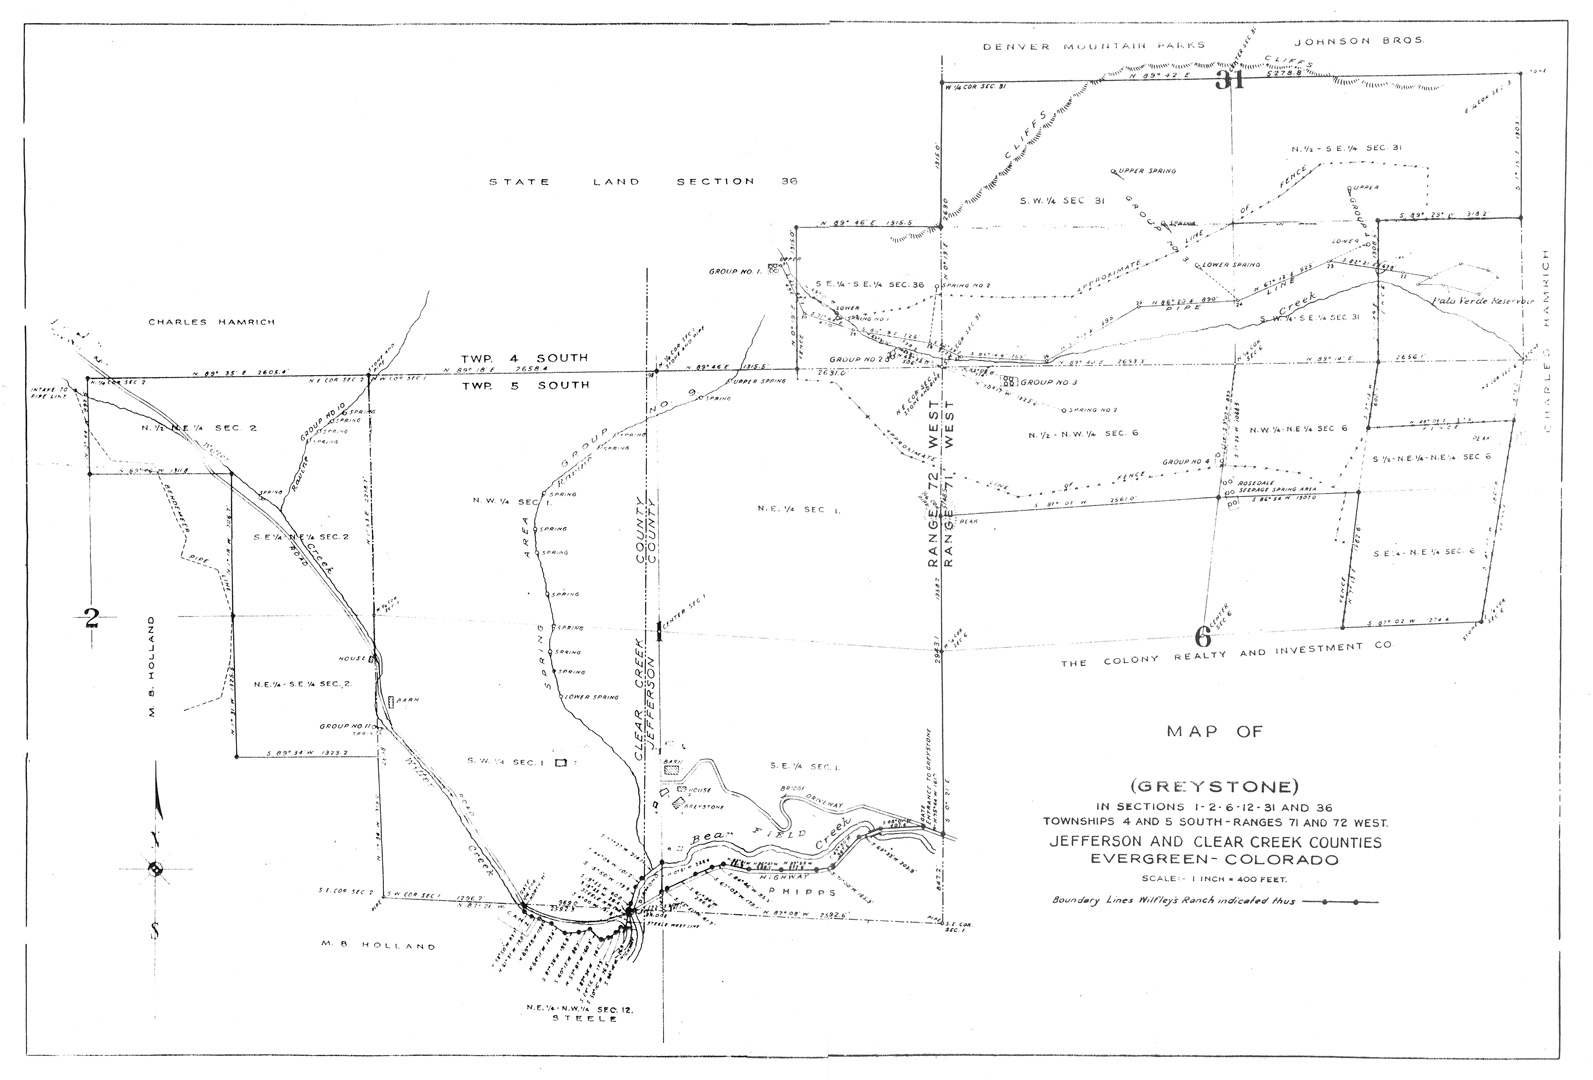 Greystone survey map. Elmer purchased the adjacent Mayo Ranch and grew Greystone to over 1250 acres for 90 head of cattle and 6 horses. Survey Map Courtesy Sandifer Family Collection